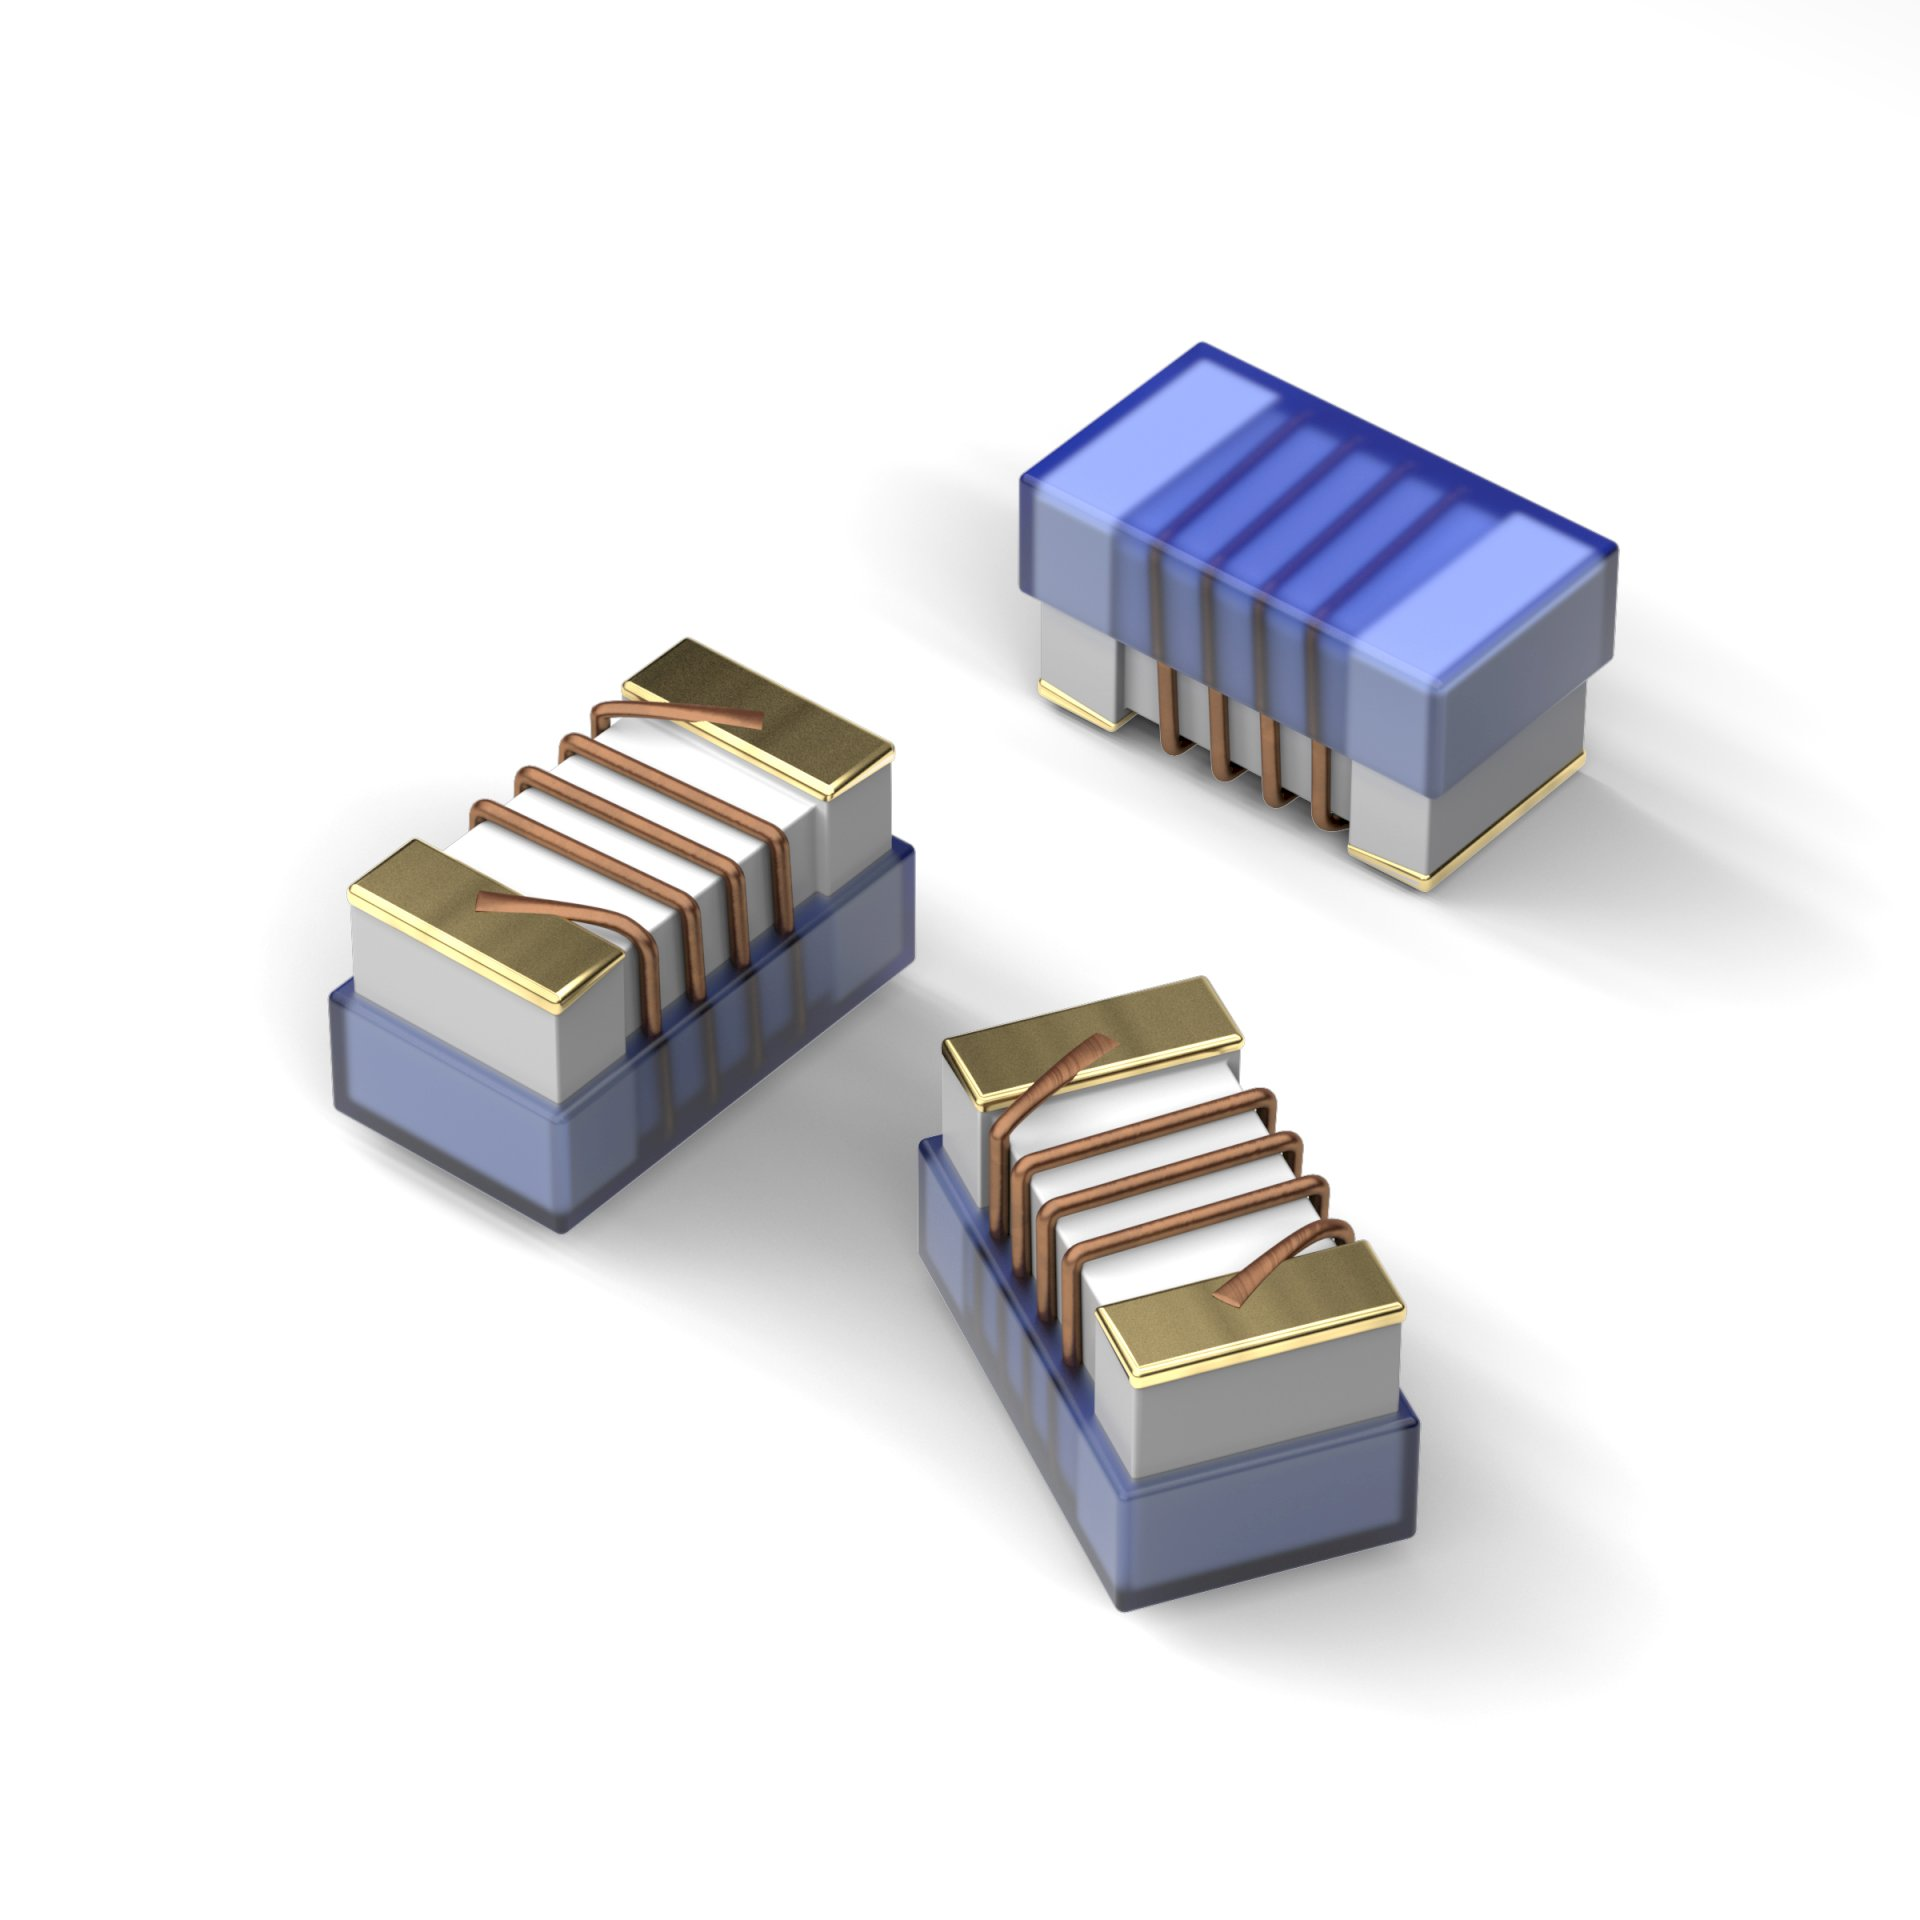 Würth Elektronik extends its product family of WE-KI ceramic SMT inductors